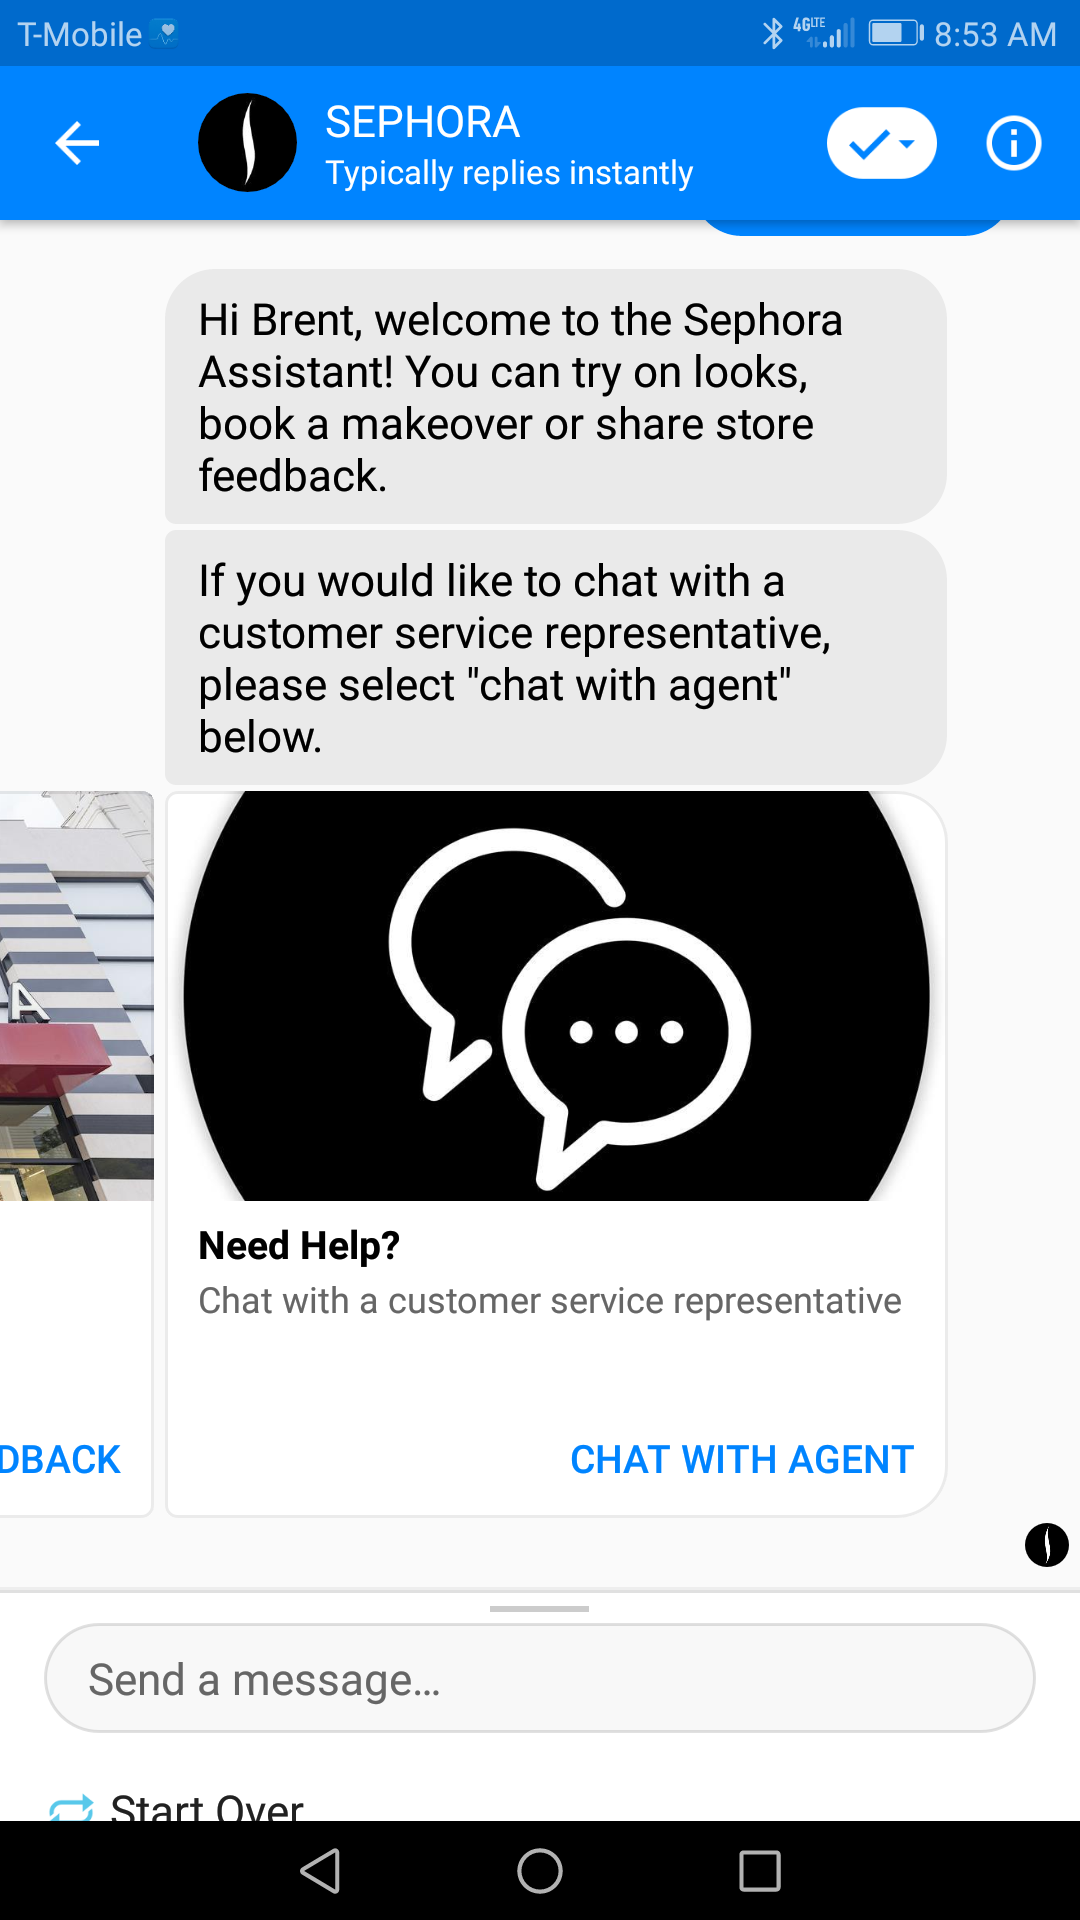 Chatbots are becoming increasingly common to handle customer concerns in an instant